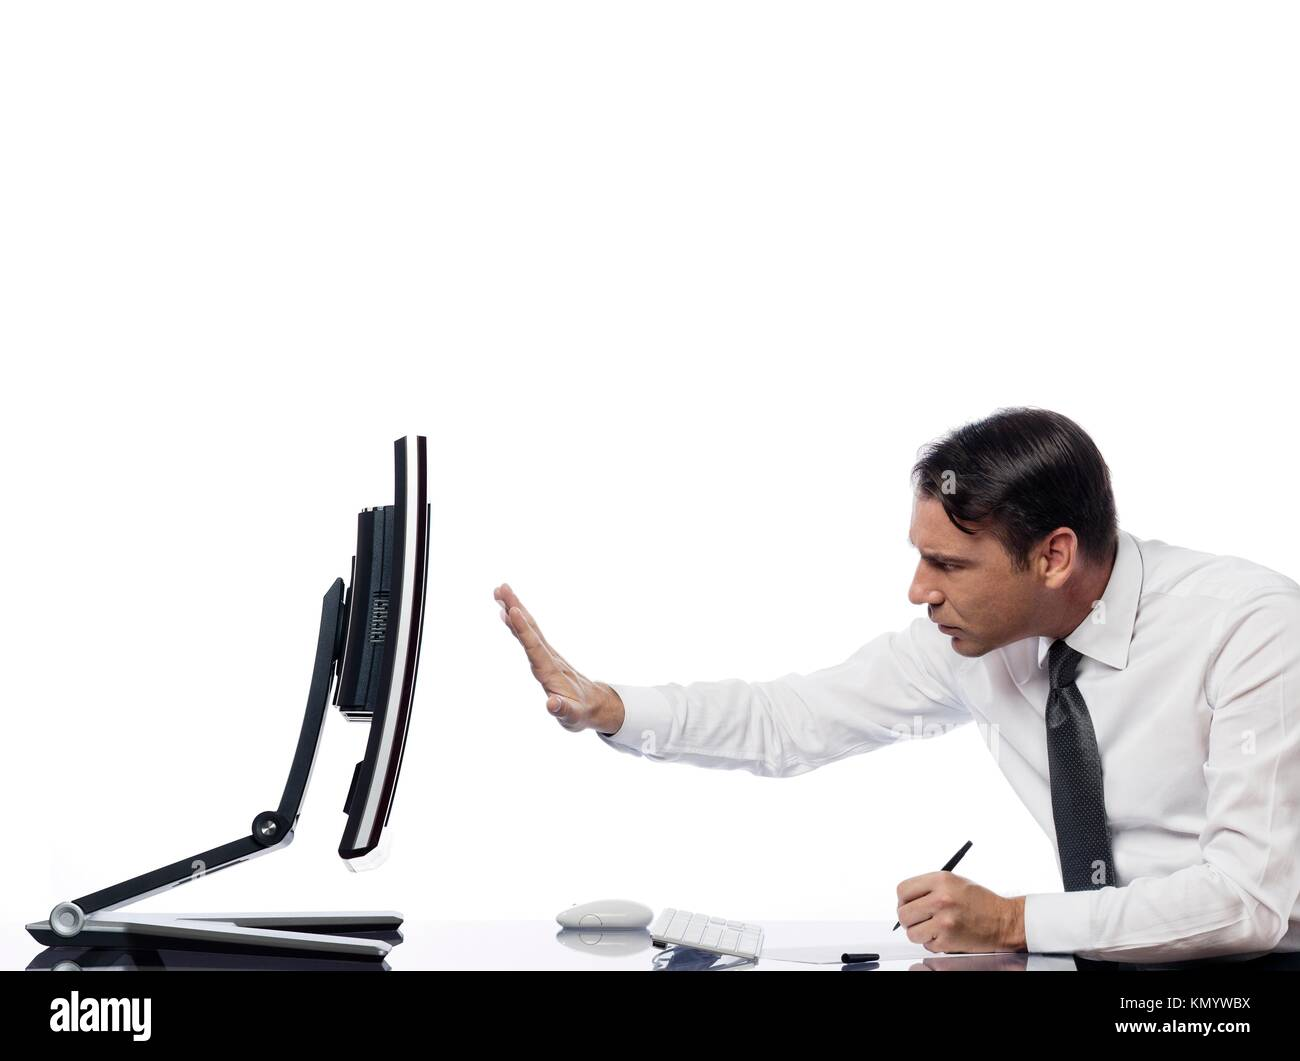 relationship between a caucasian man and a computer display monitor on isolated white background expressing intrusion - Stock Image